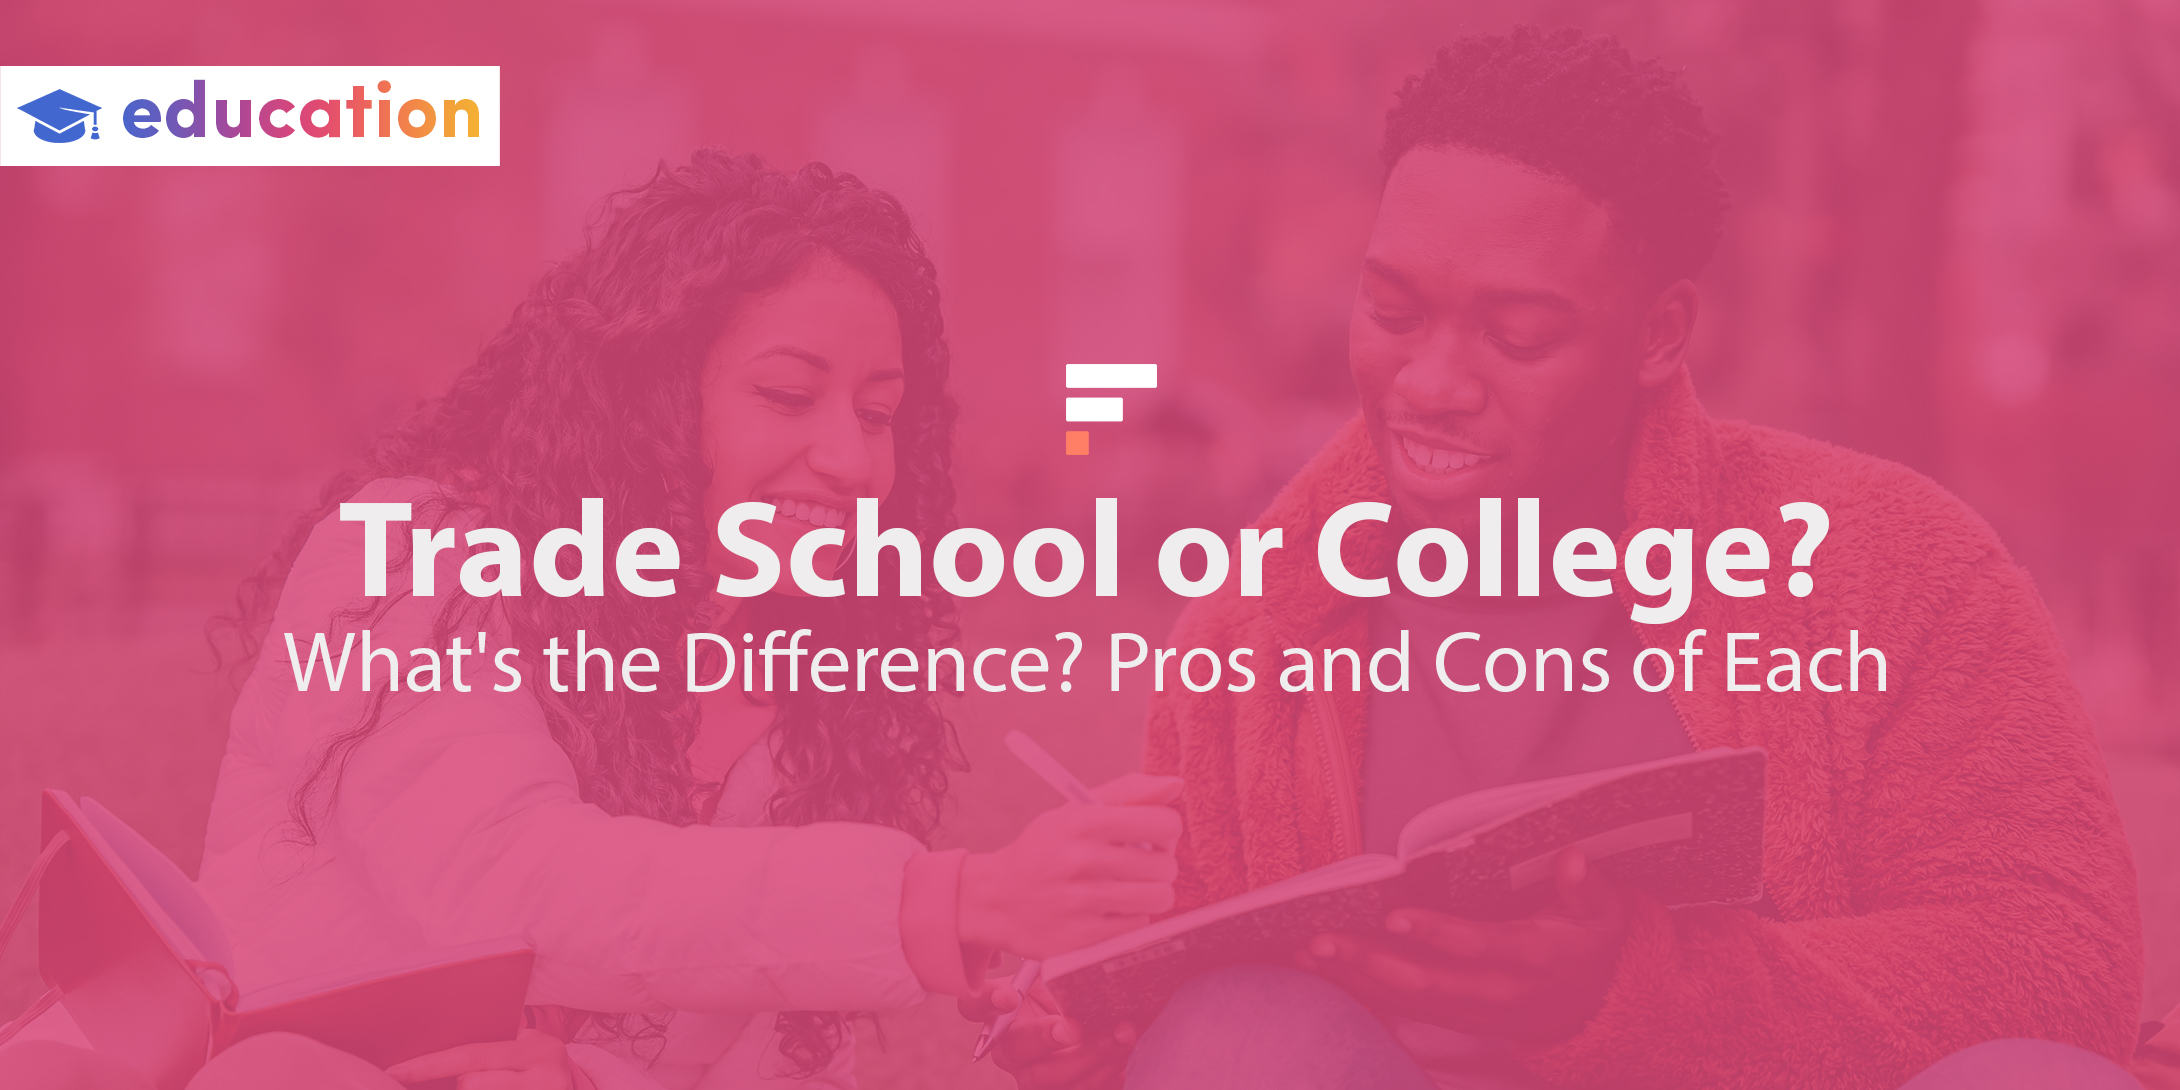 Trade School or College? What's the Difference? Pros and Cons of Each